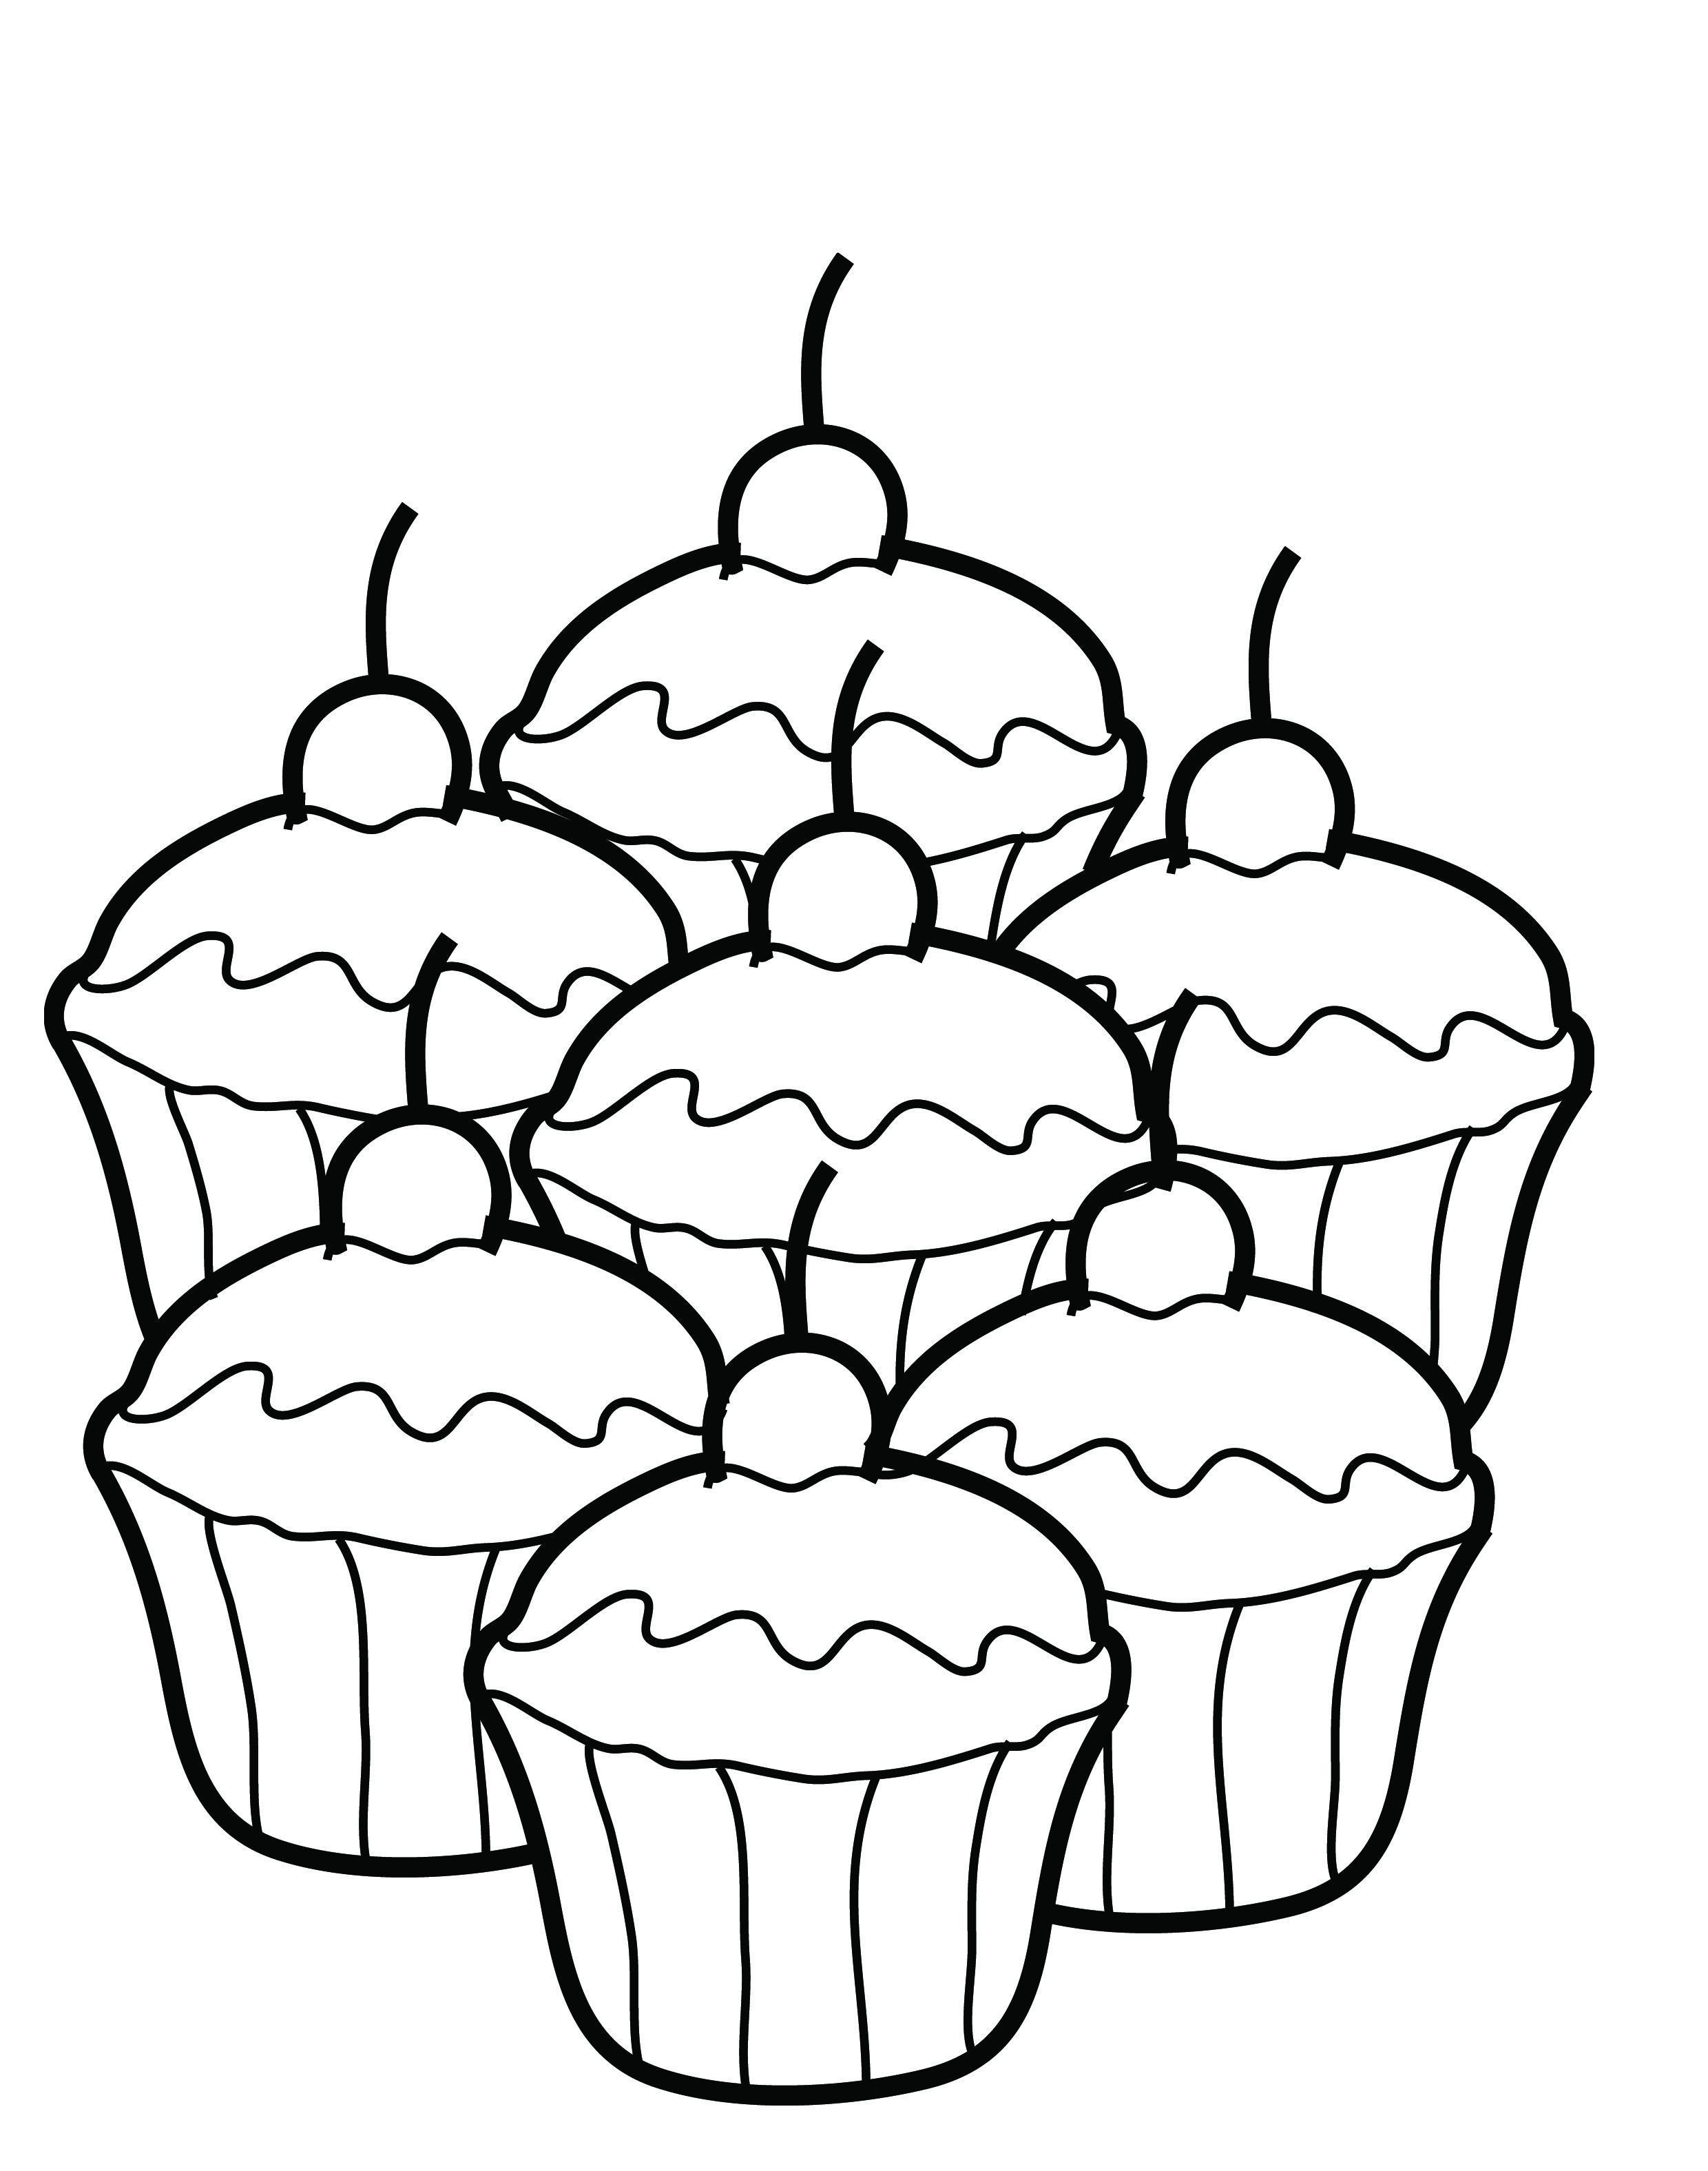 cupcake coloring pages for kids - Coloring Pictures Of Kids